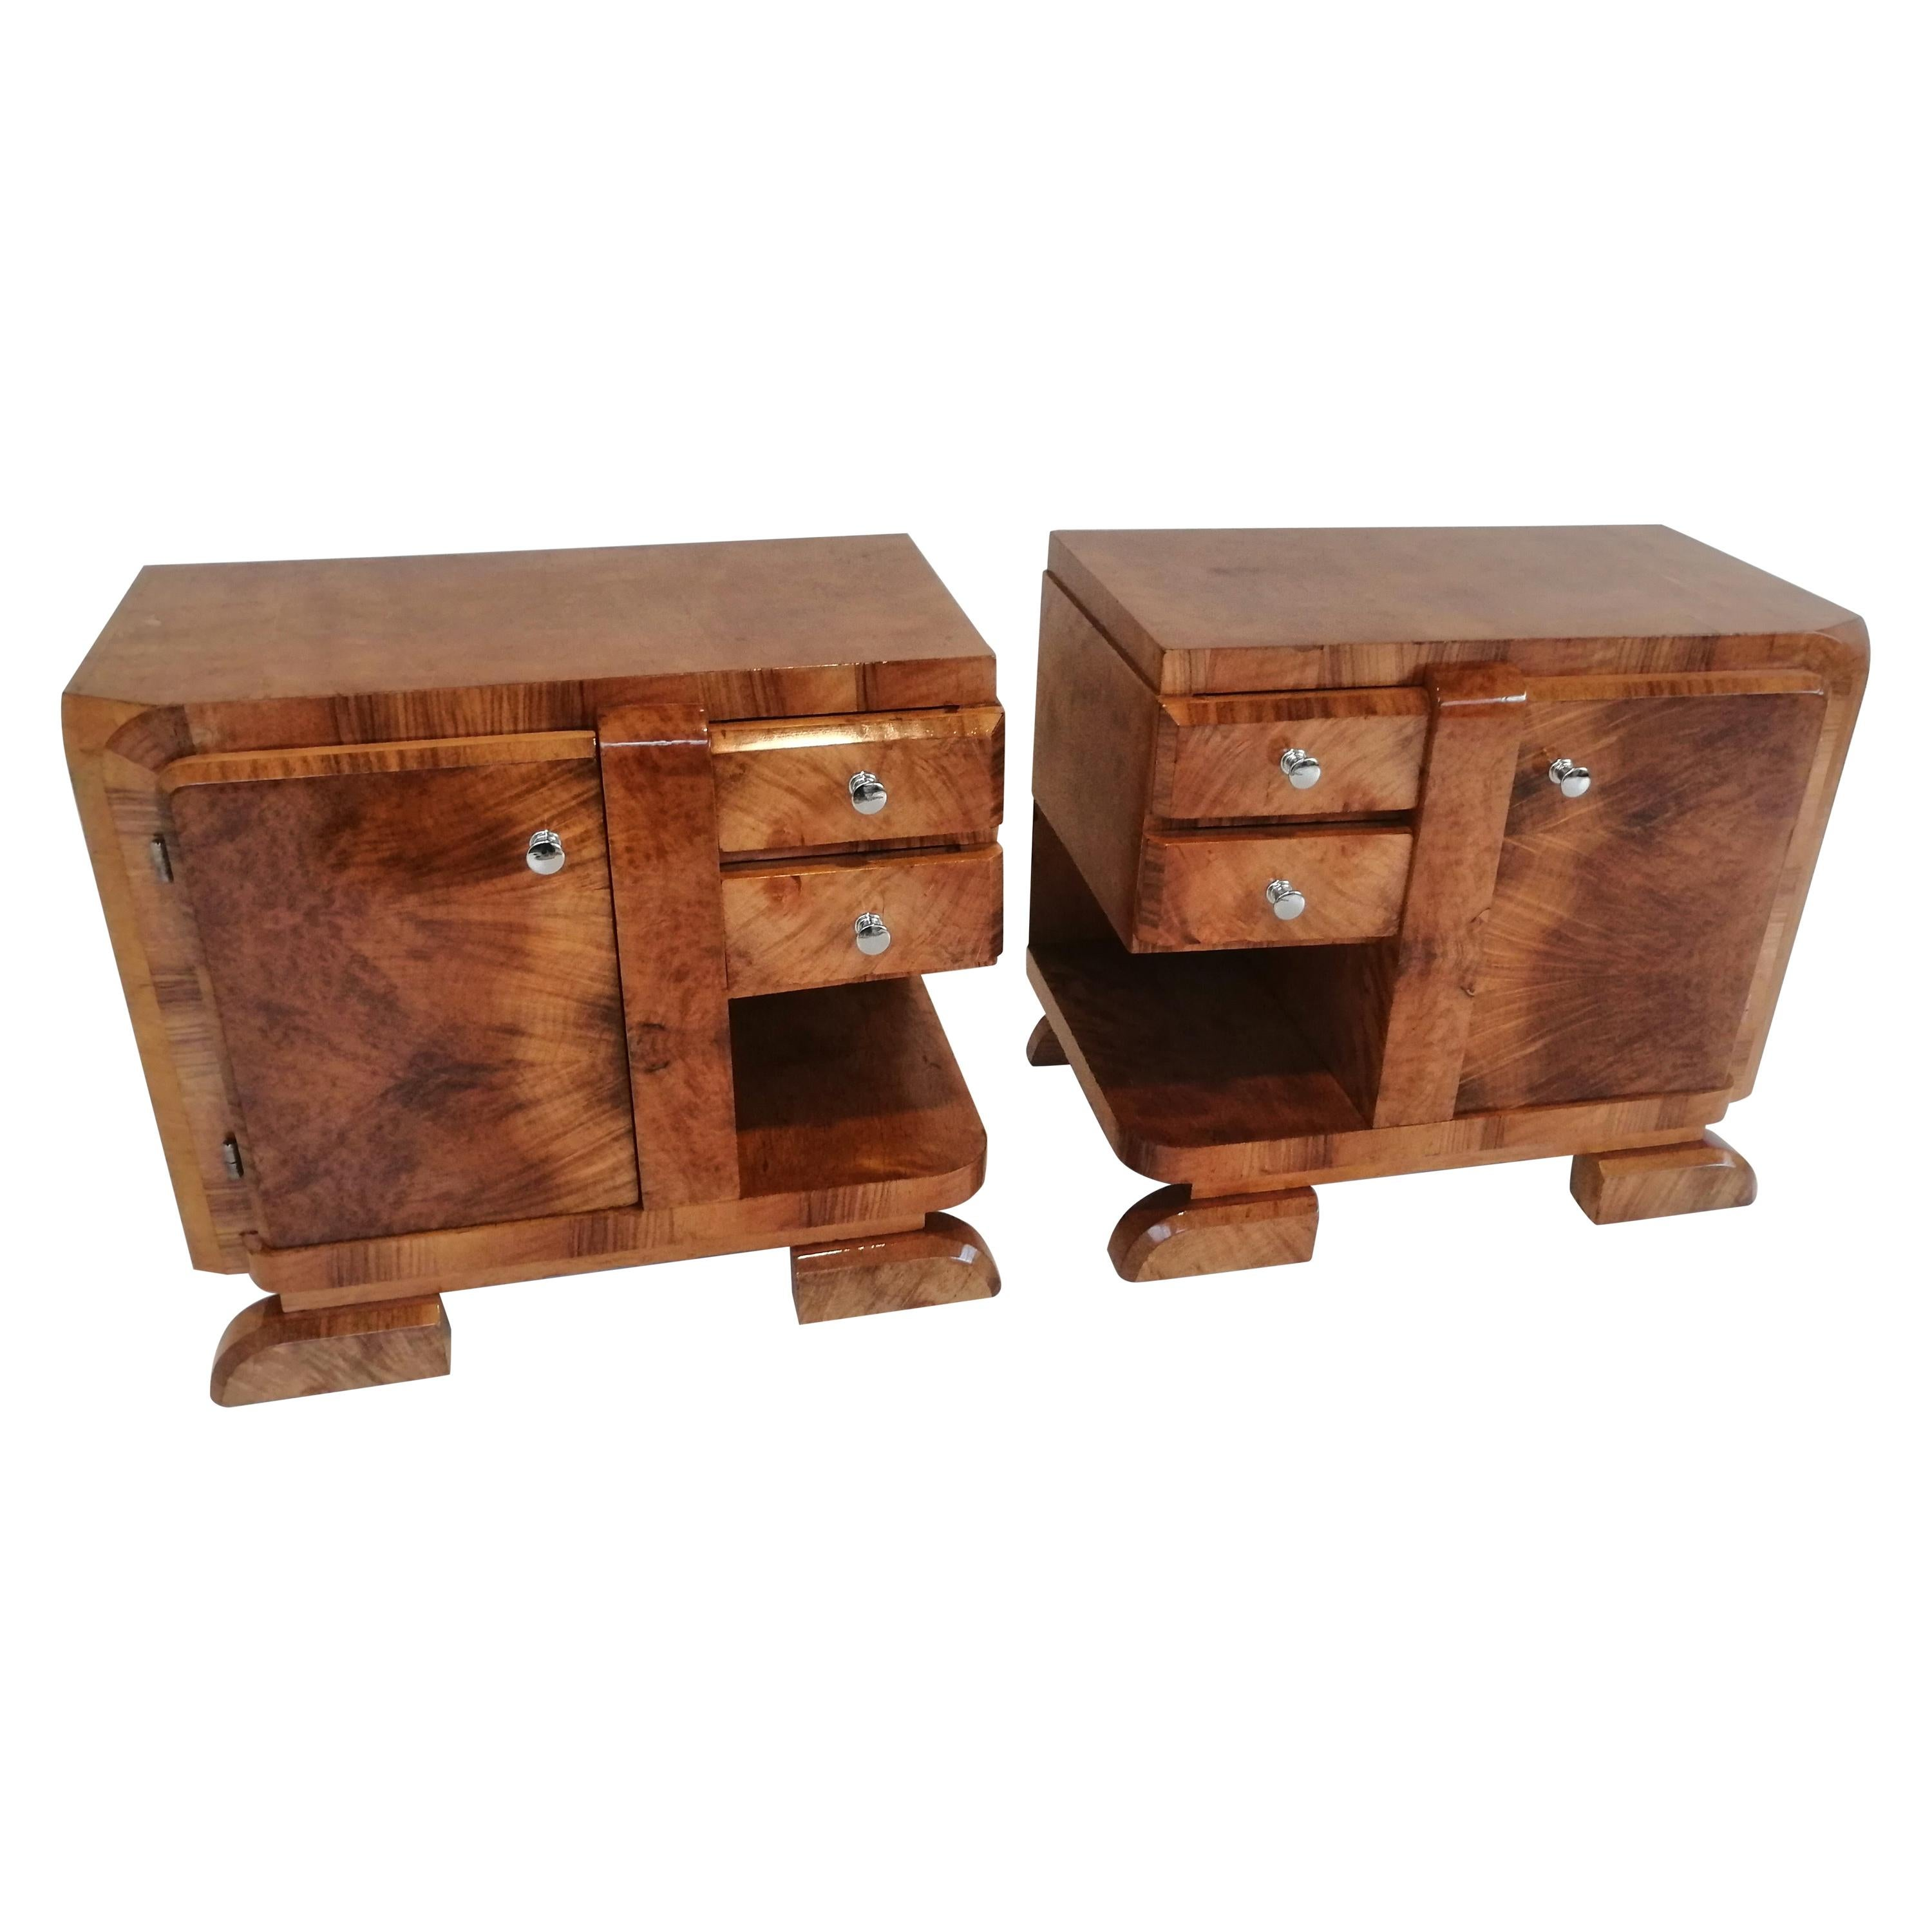 Two Art Deco Bedside Tables from 1940